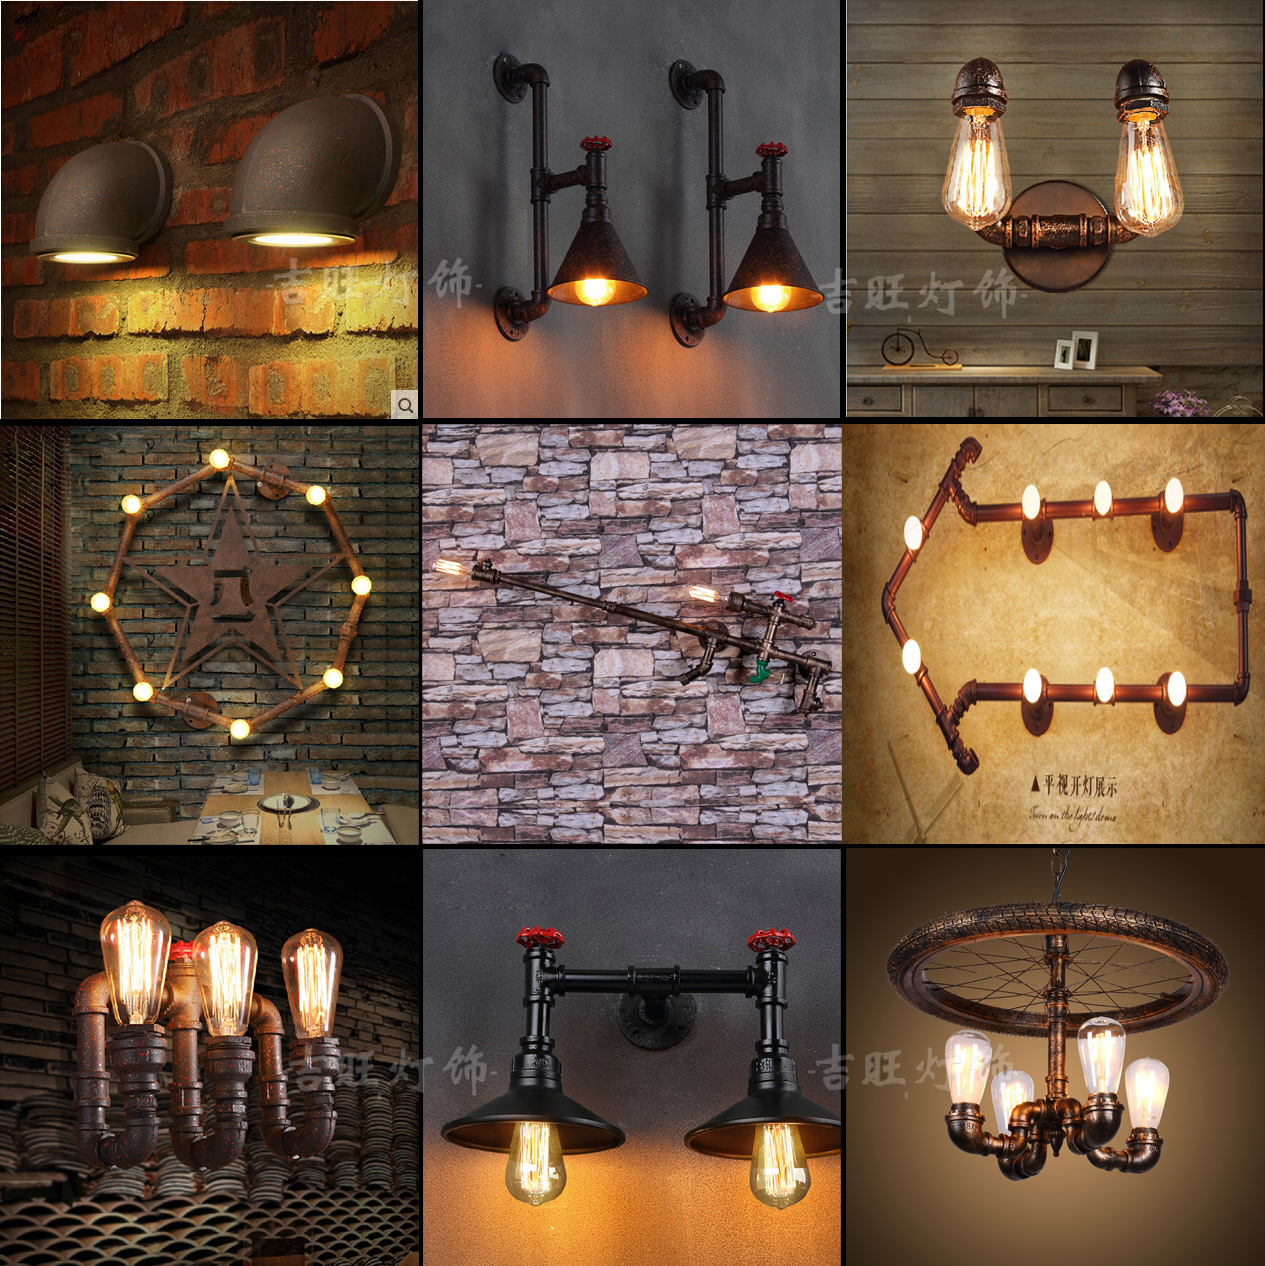 retro bar wall lamp wall lamp industry personality sitting room dining-room decorates lamp, wrought iron pipe wall lampretro bar wall lamp wall lamp industry personality sitting room dining-room decorates lamp, wrought iron pipe wall lamp